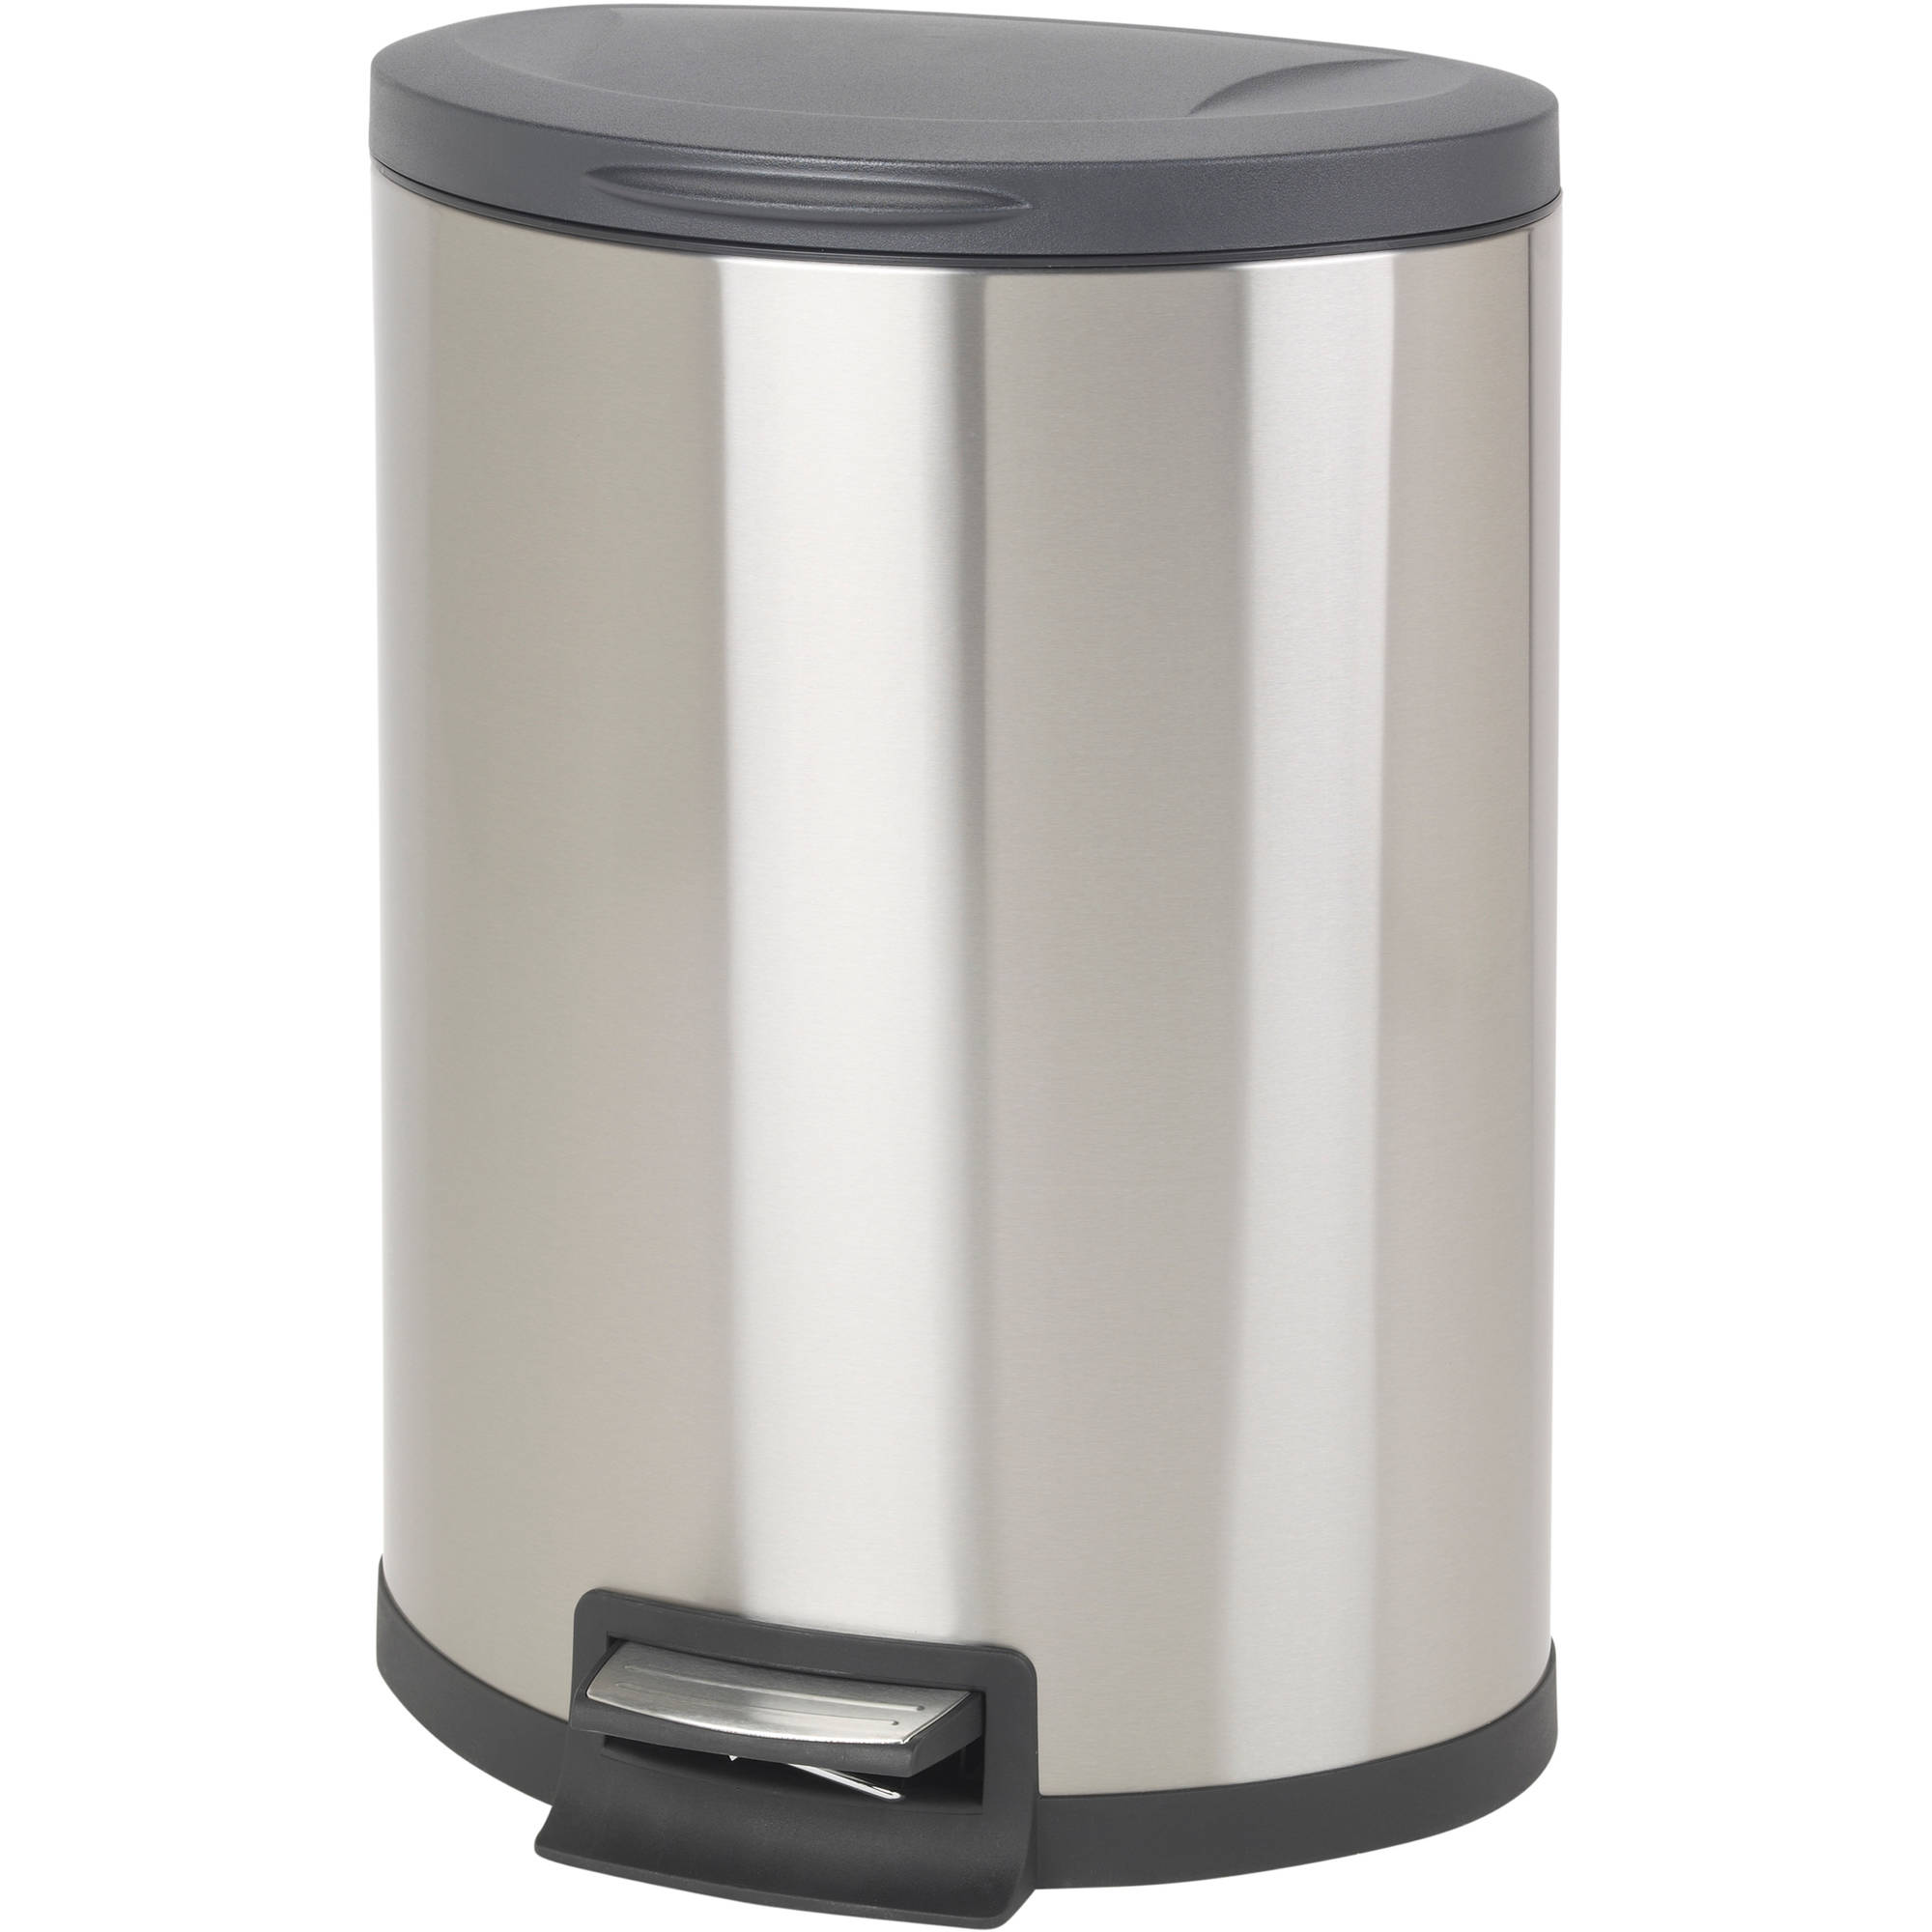 Small Kitchen Trash Cans Better Homes Garden 11 8 Gallon Semi Round Stainless Steel Waste Can